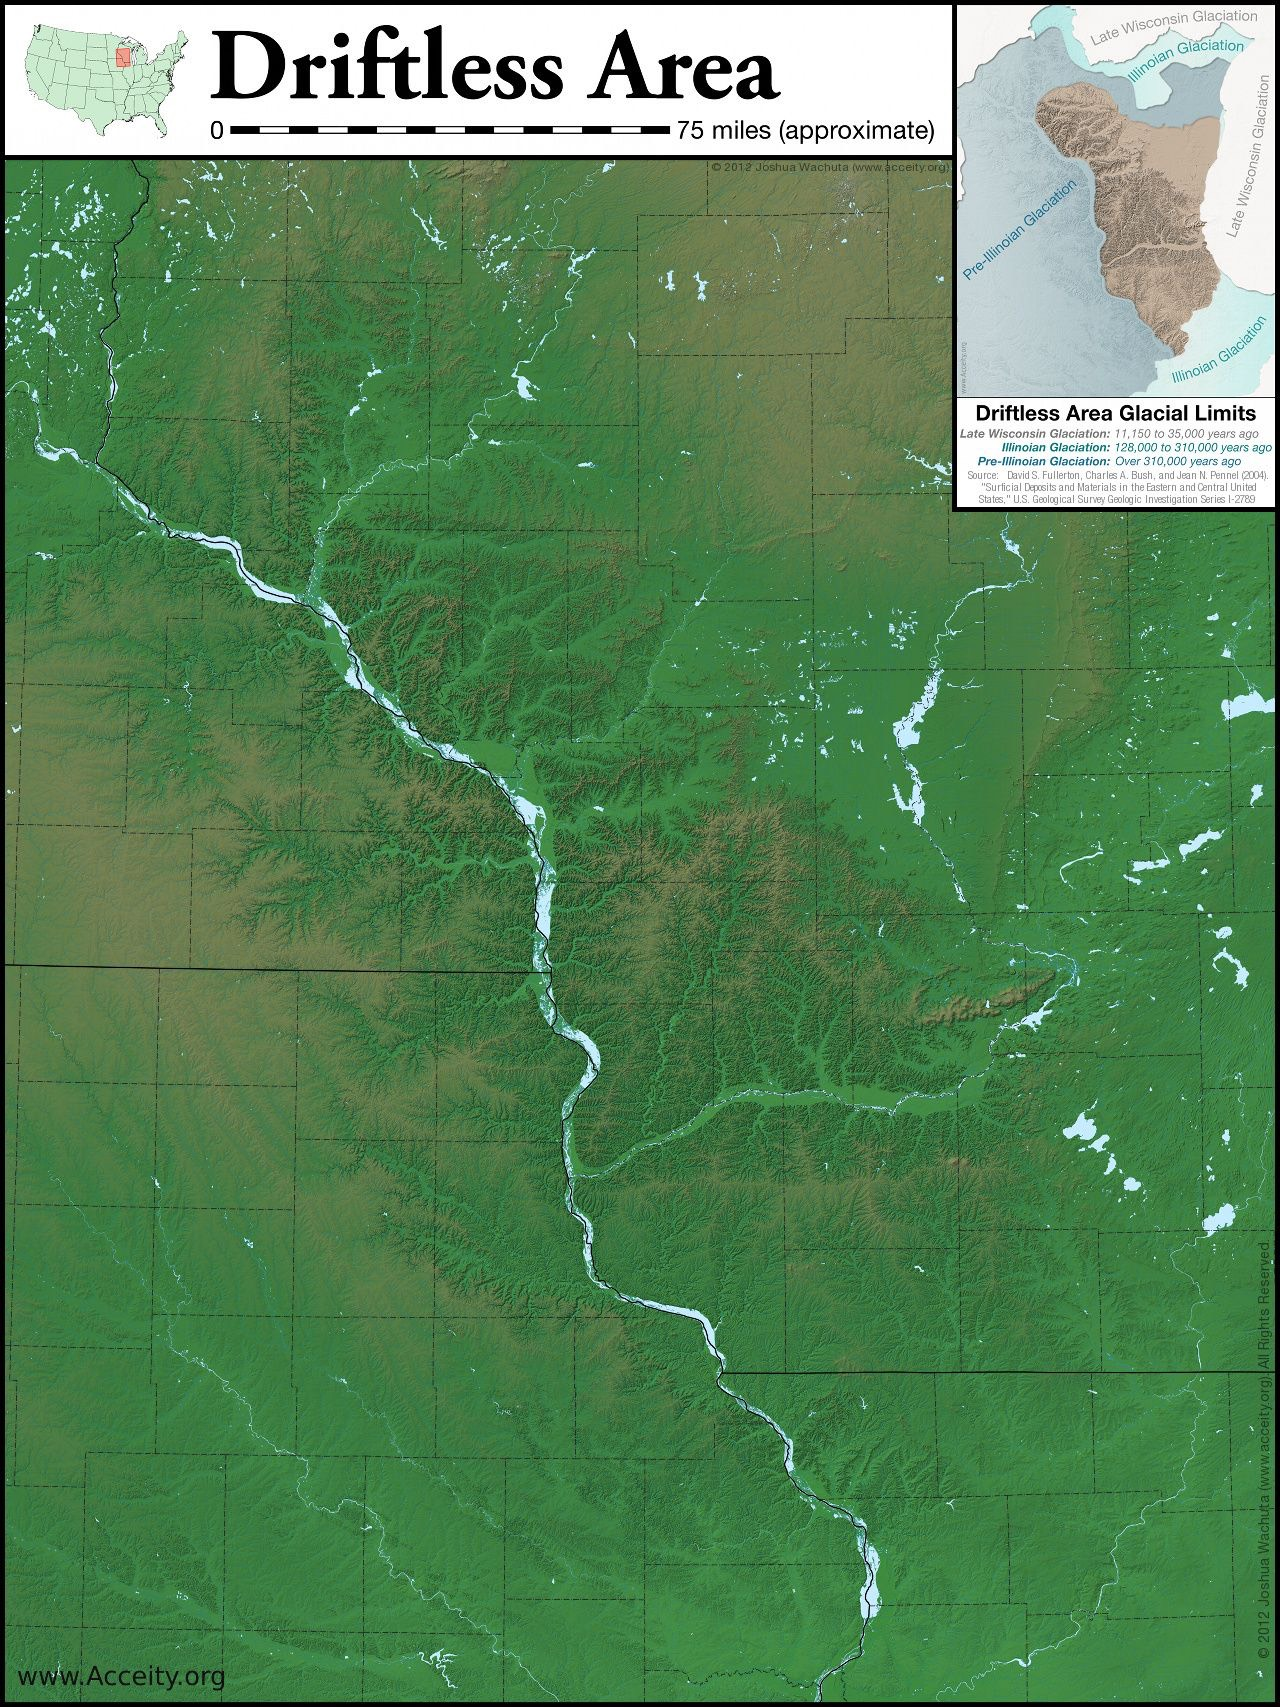 Map by Joshua Wachuta,   https://www.acceity.org/2012/06/22/mapping-the-driftless-area/